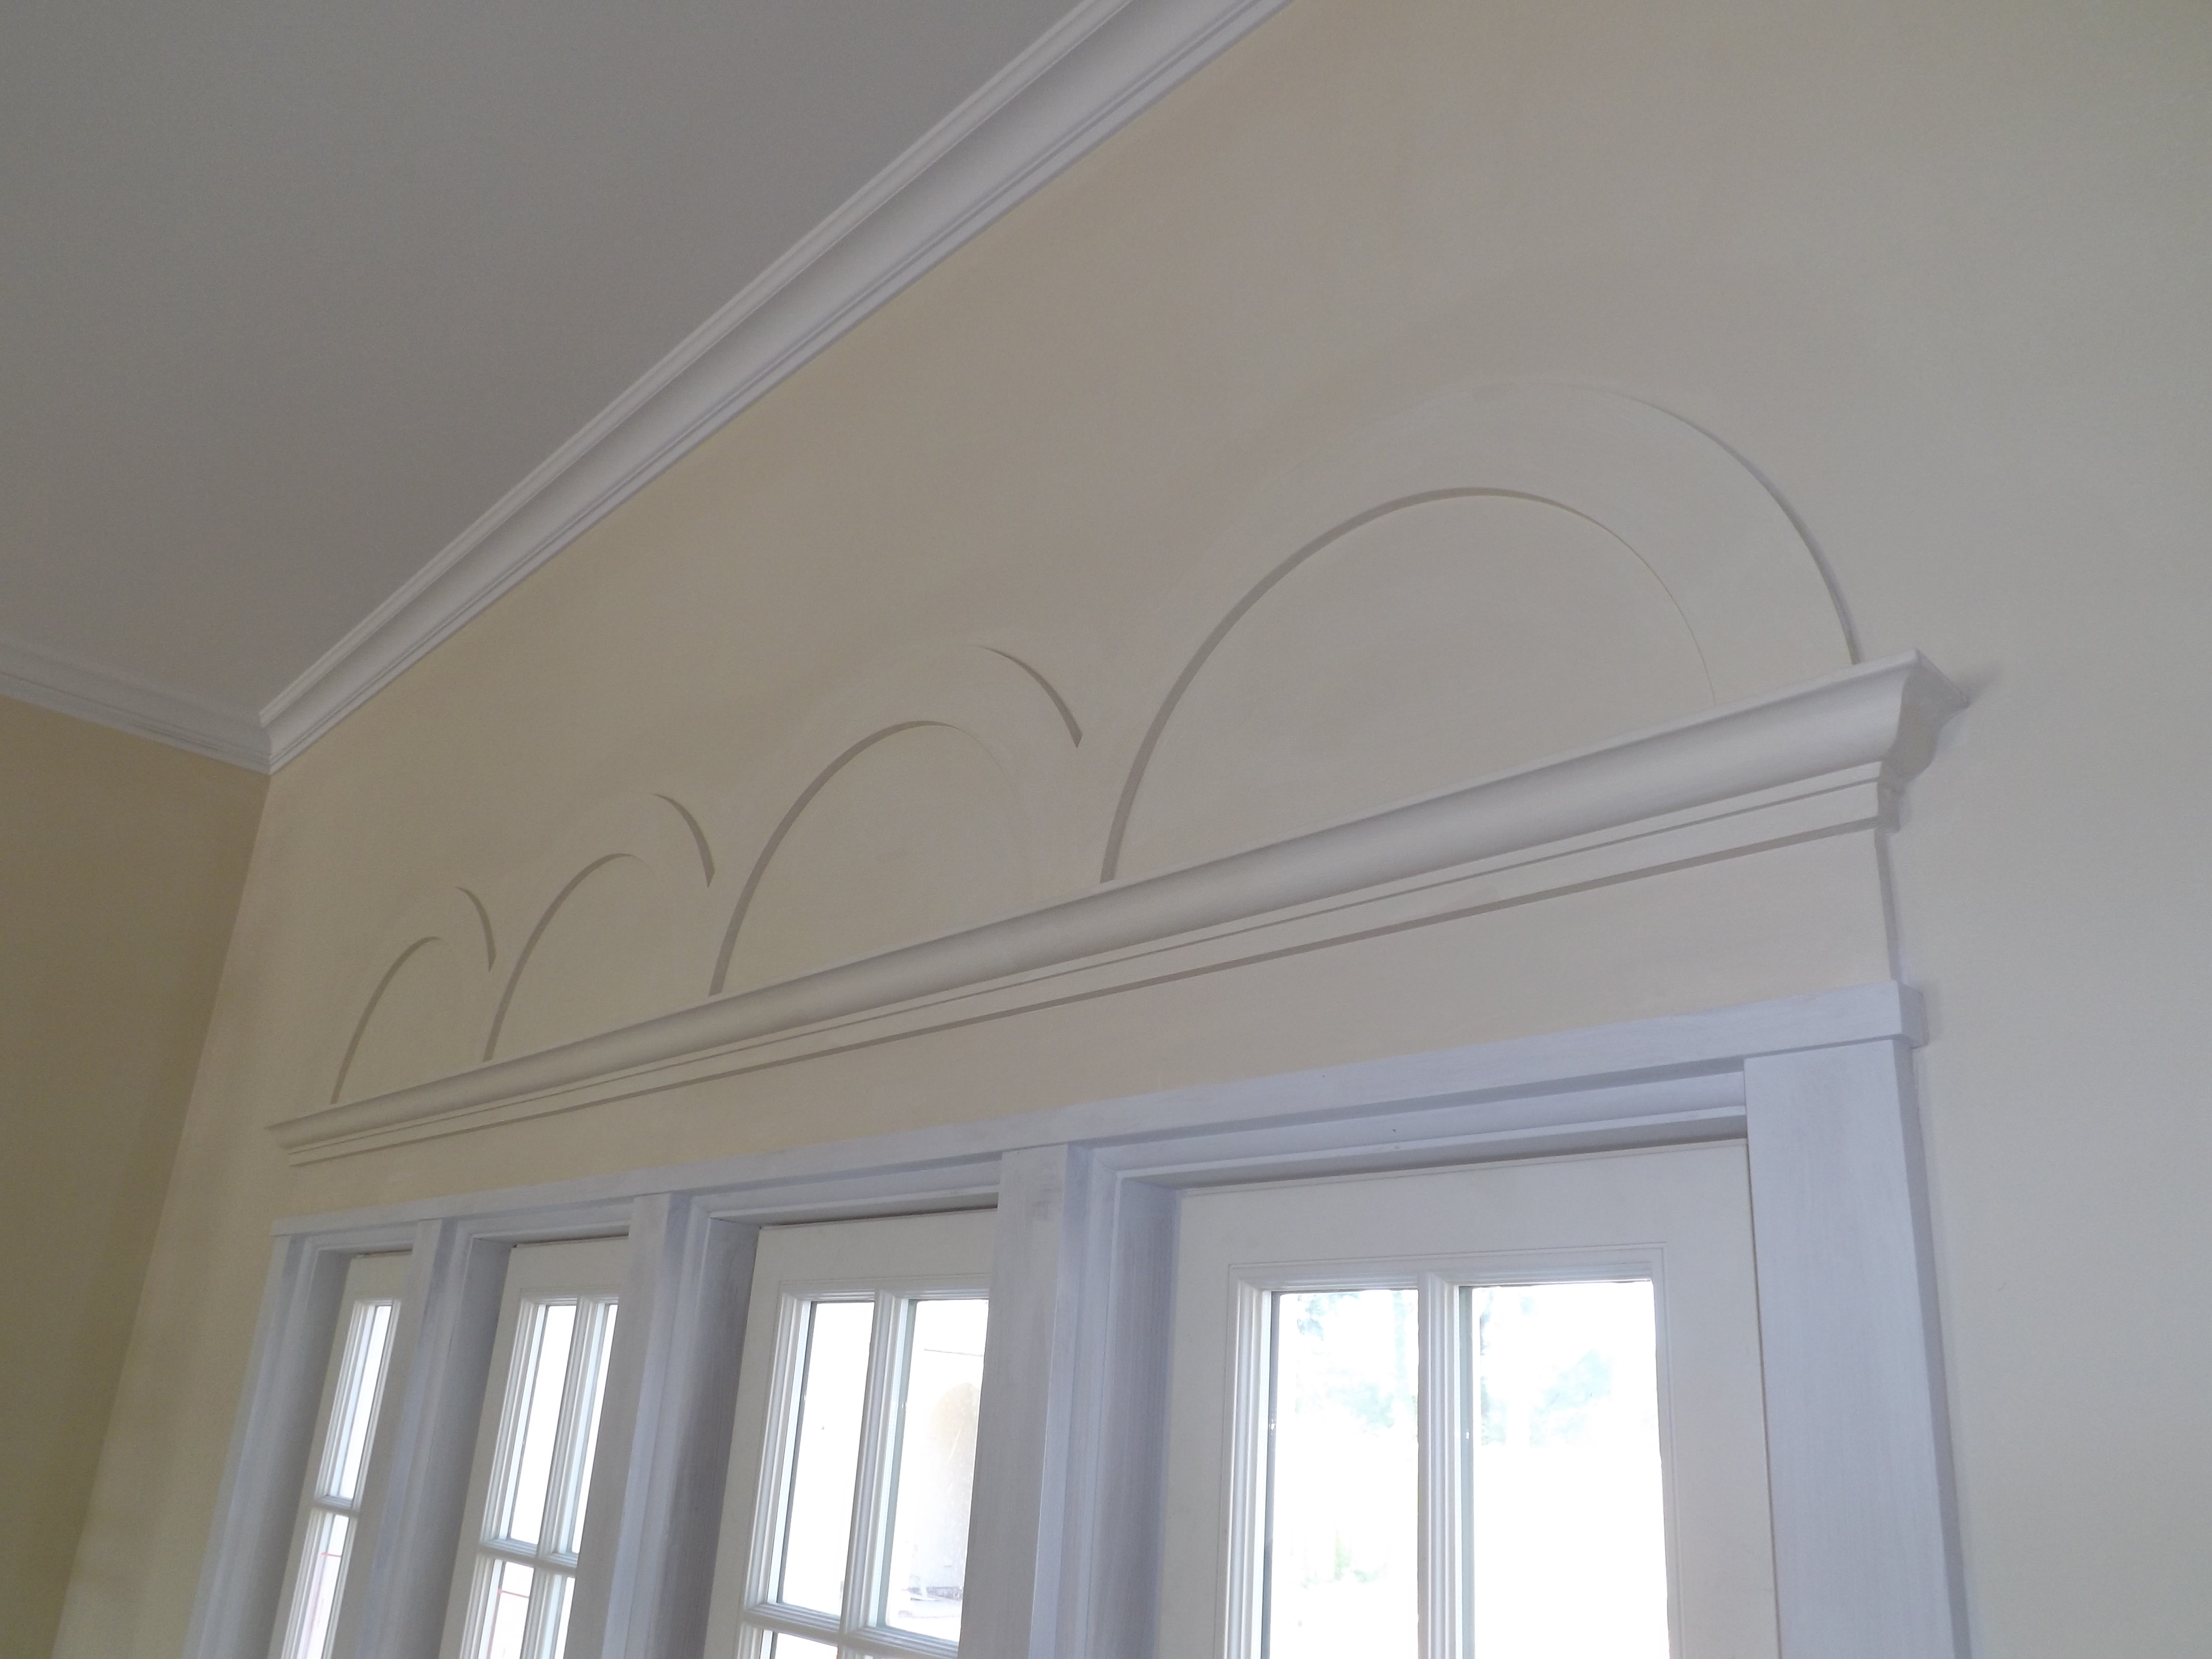 Good Smooth Textured Interior Plaster ,with Plaster Decorative Cast Arches